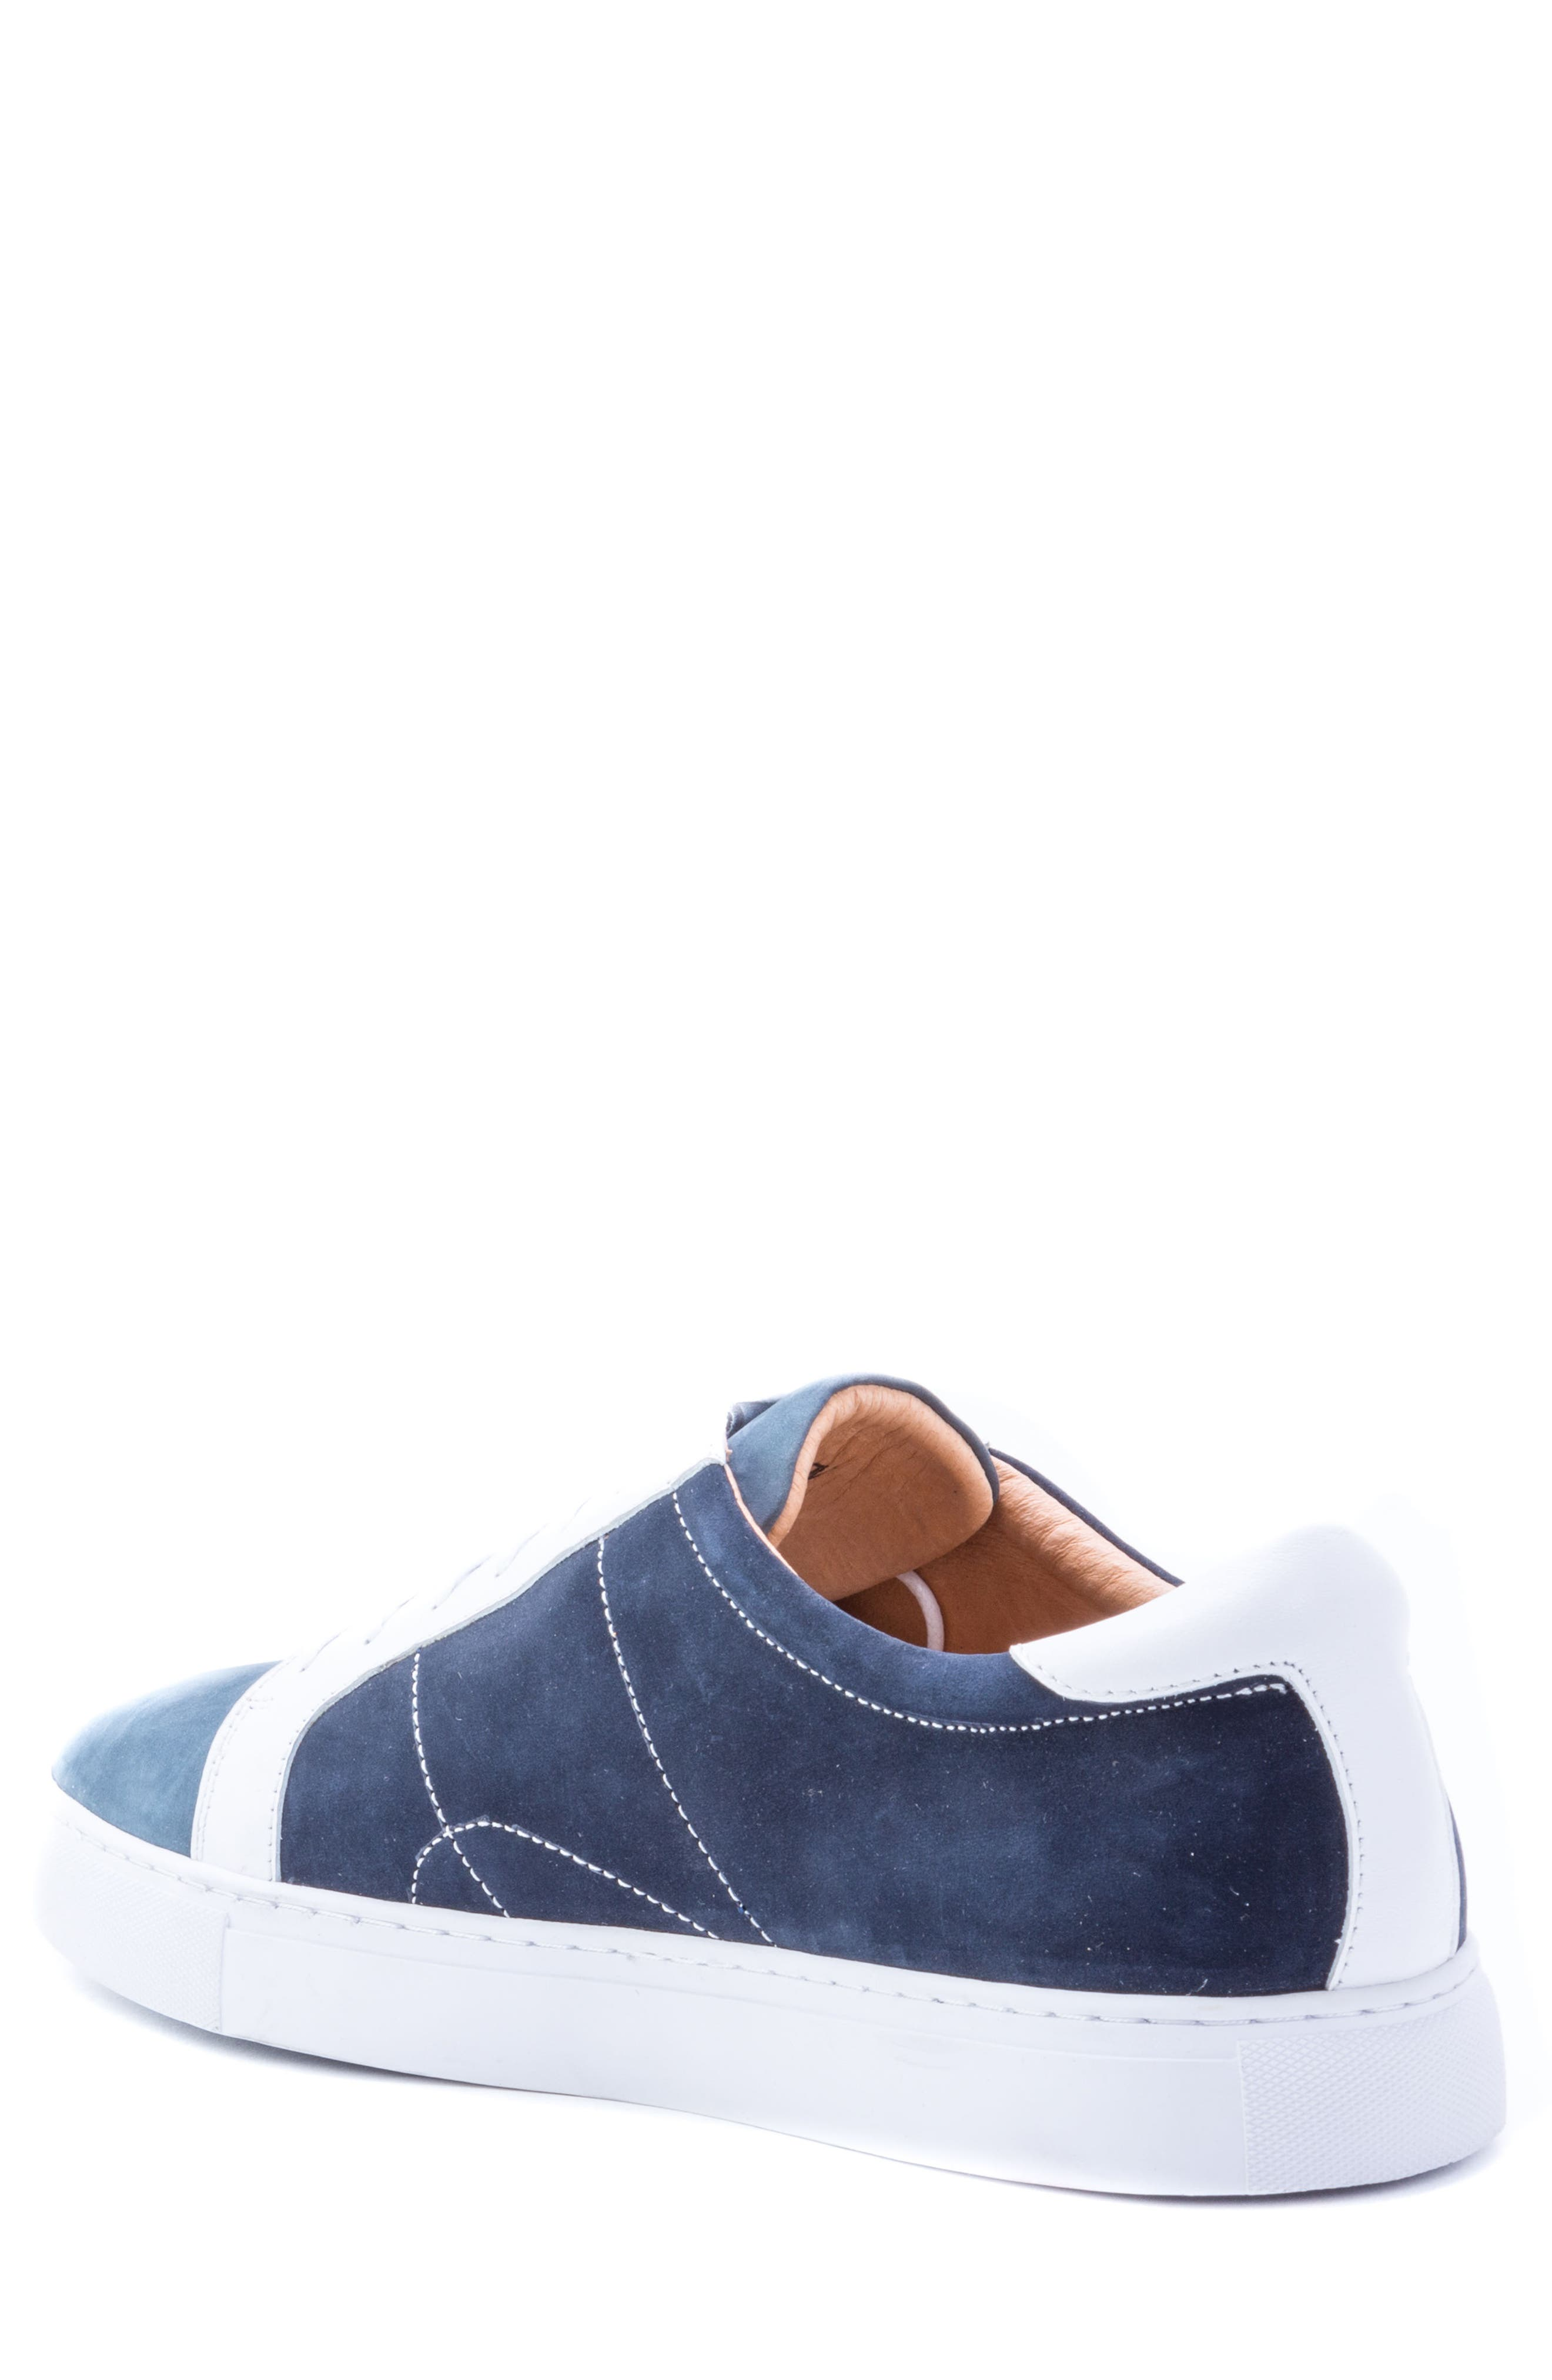 Gonzalo Low Top Sneaker,                             Alternate thumbnail 2, color,                             Navy Suede